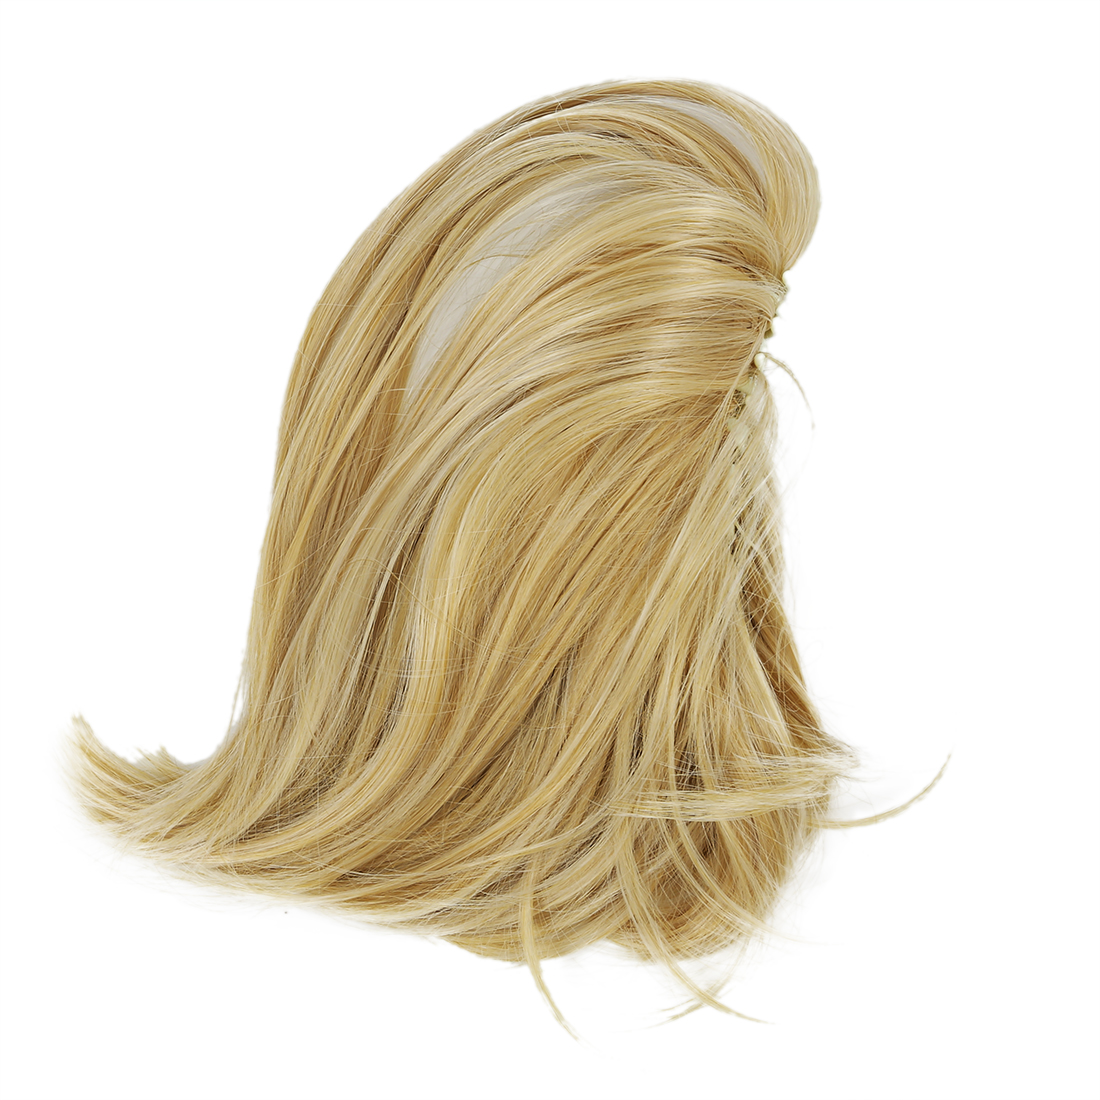 Short Ponytail Hair Extensions Synthetic Hair Wavy Claw